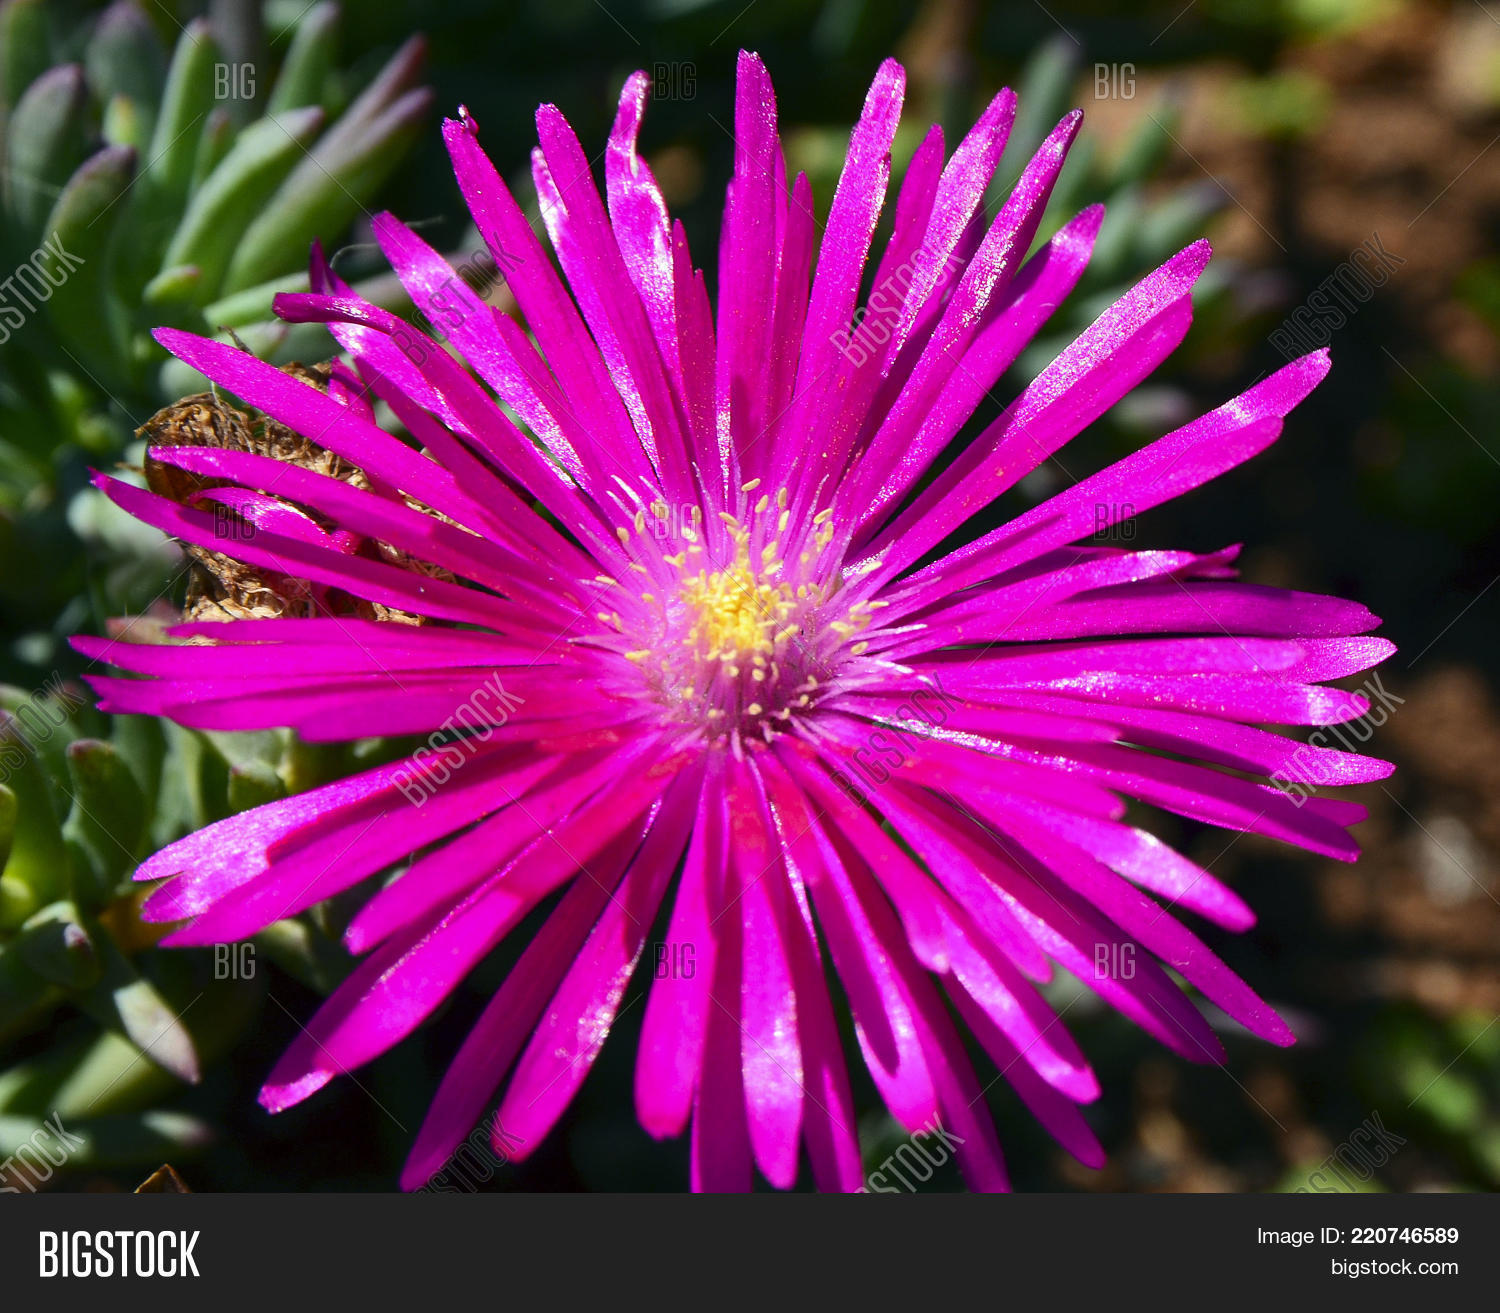 Pink Ice Plant Flower Image Photo Free Trial Bigstock